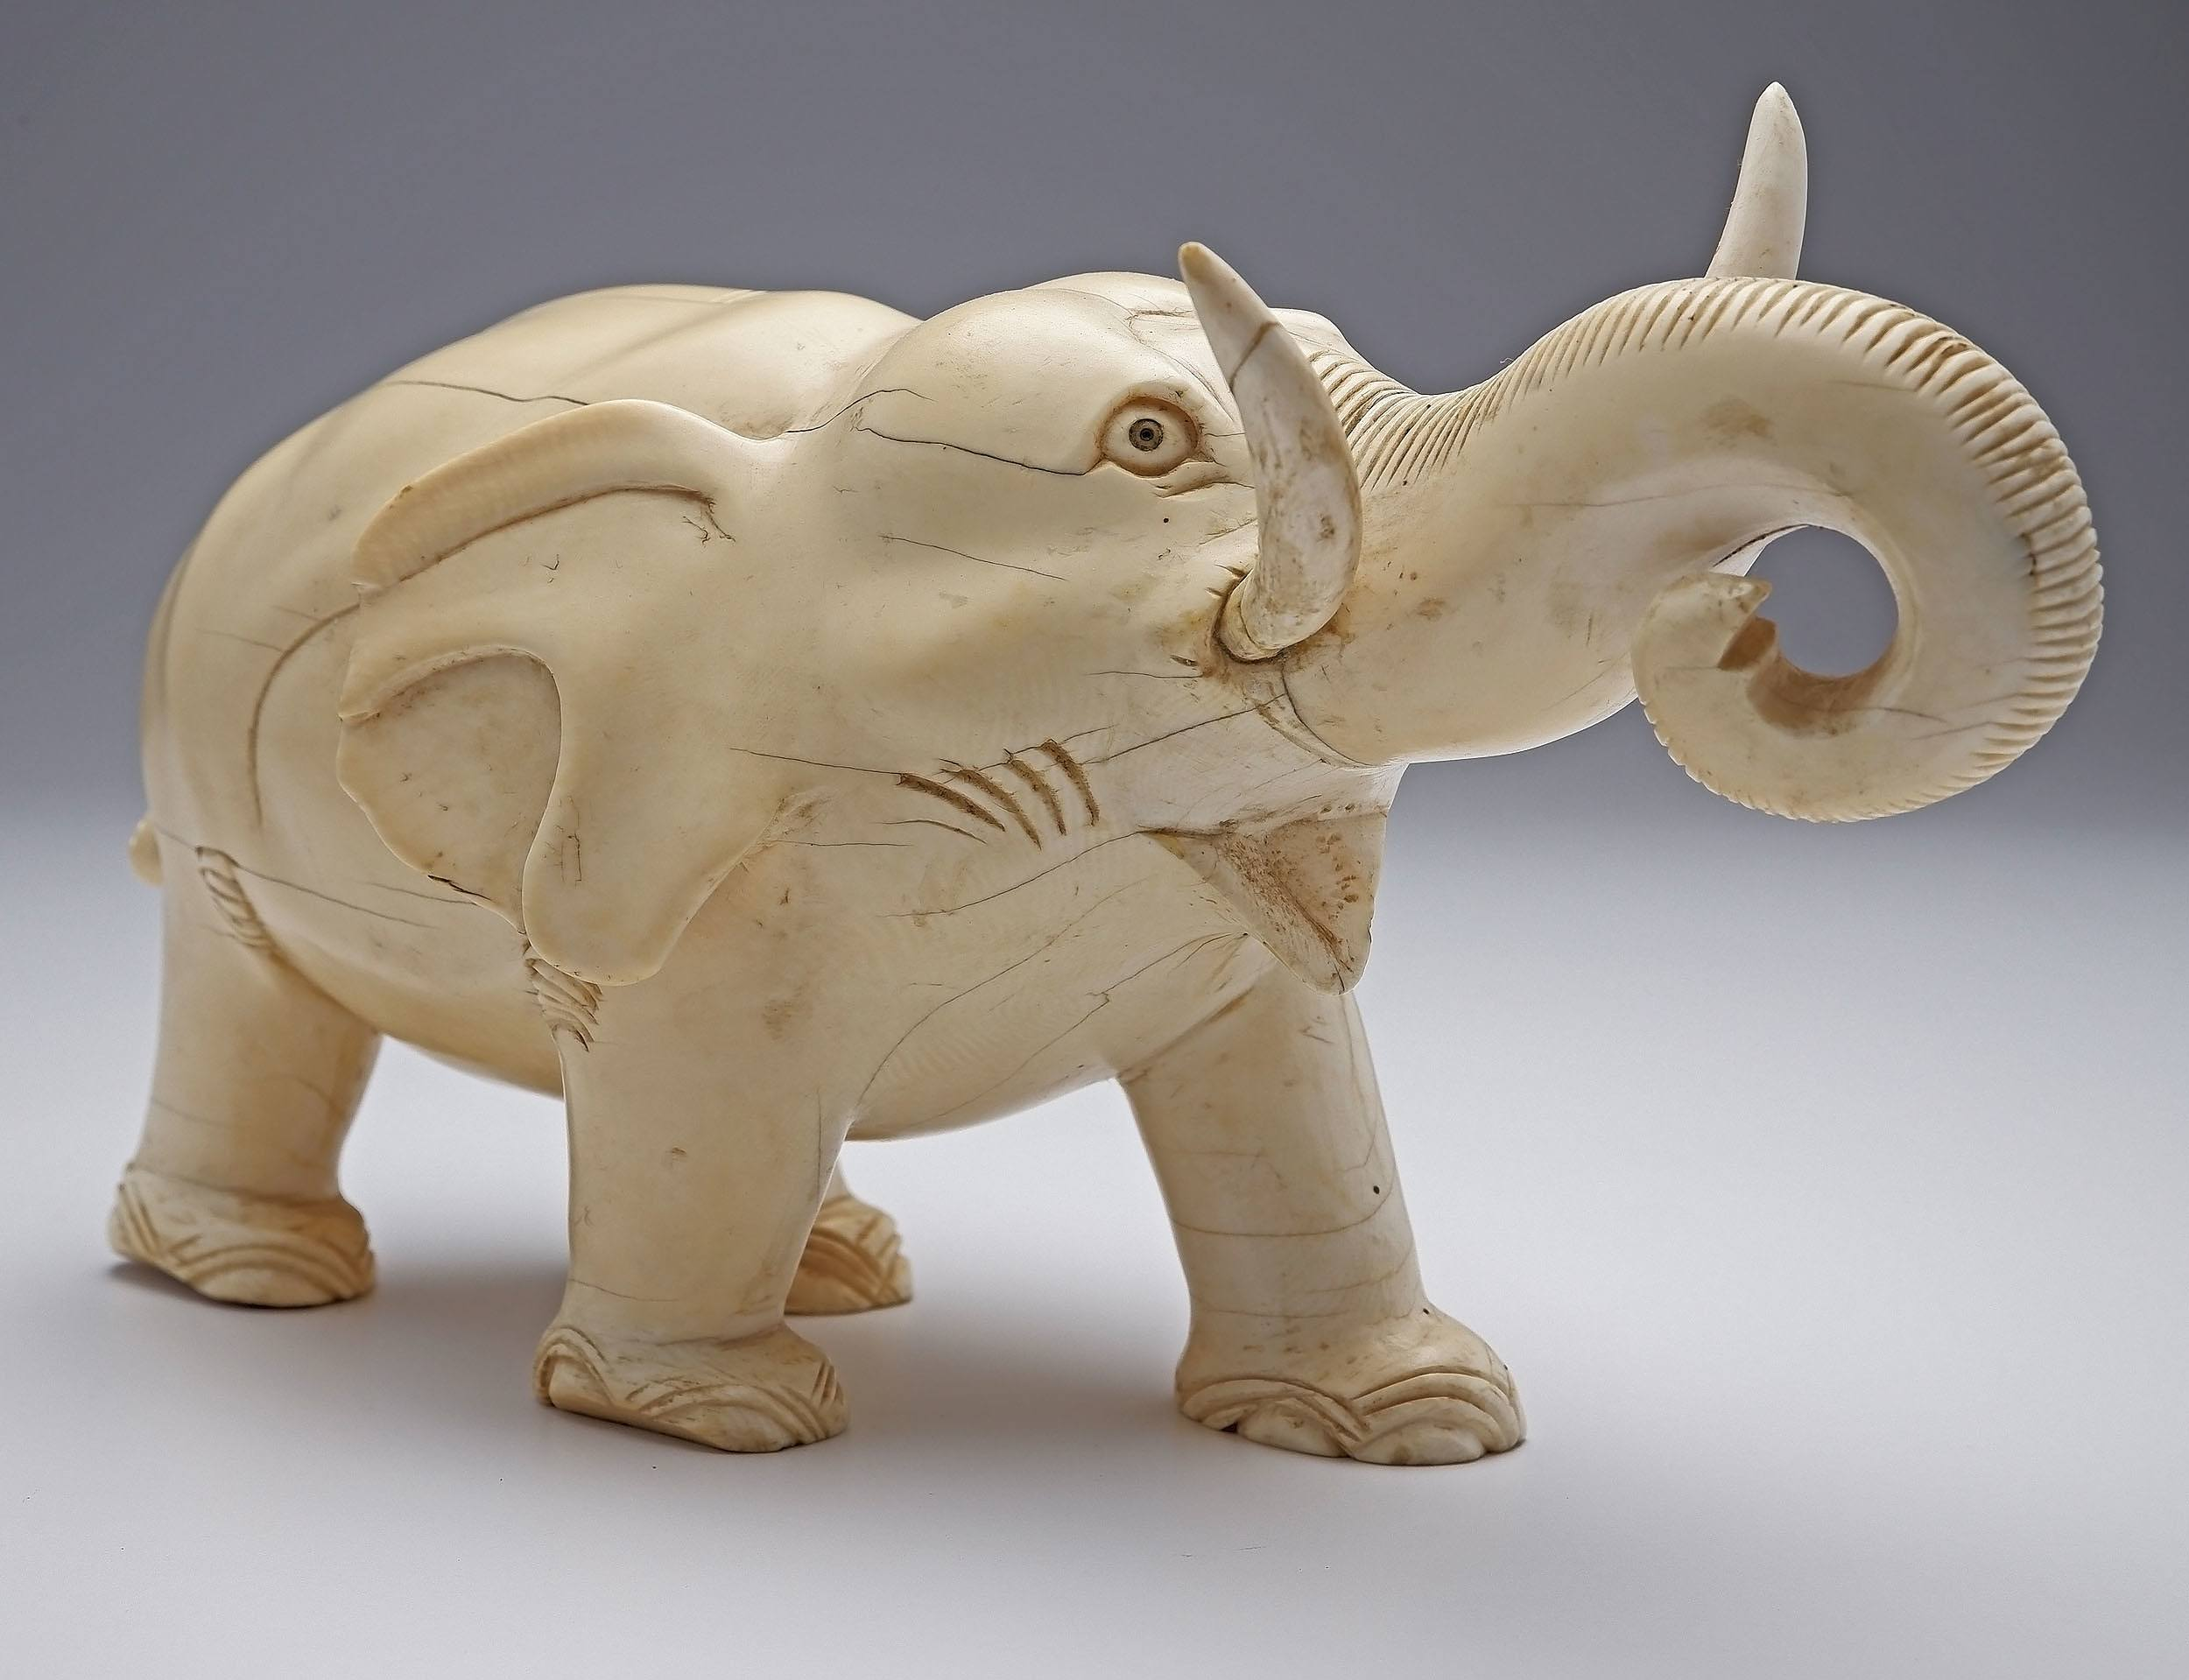 'Large Chinese Carved Ivory Model of an Elephant, Early 20th Century'